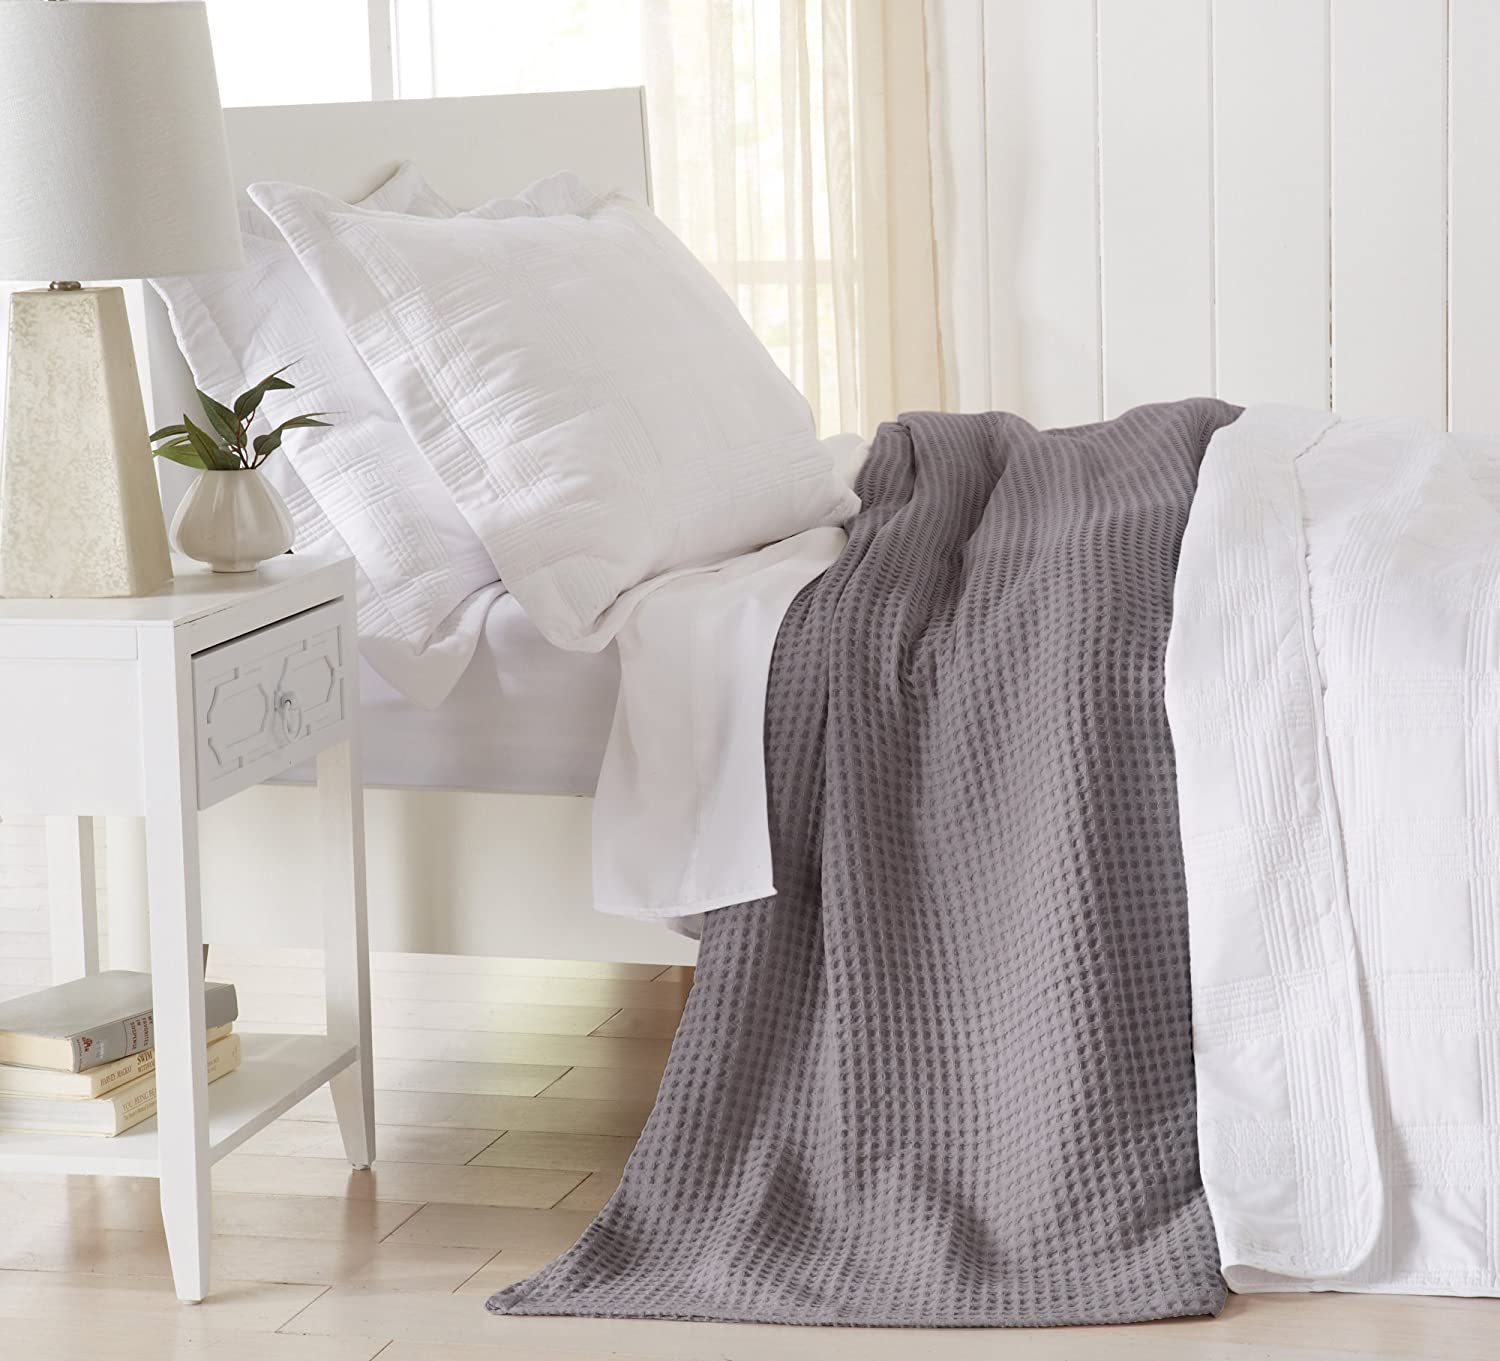 King, Pale Blue Perfect for Layering Mikala Collection Lightweight and Soft Great Bay Home 100/% Cotton Waffle Weave Premium Blanket